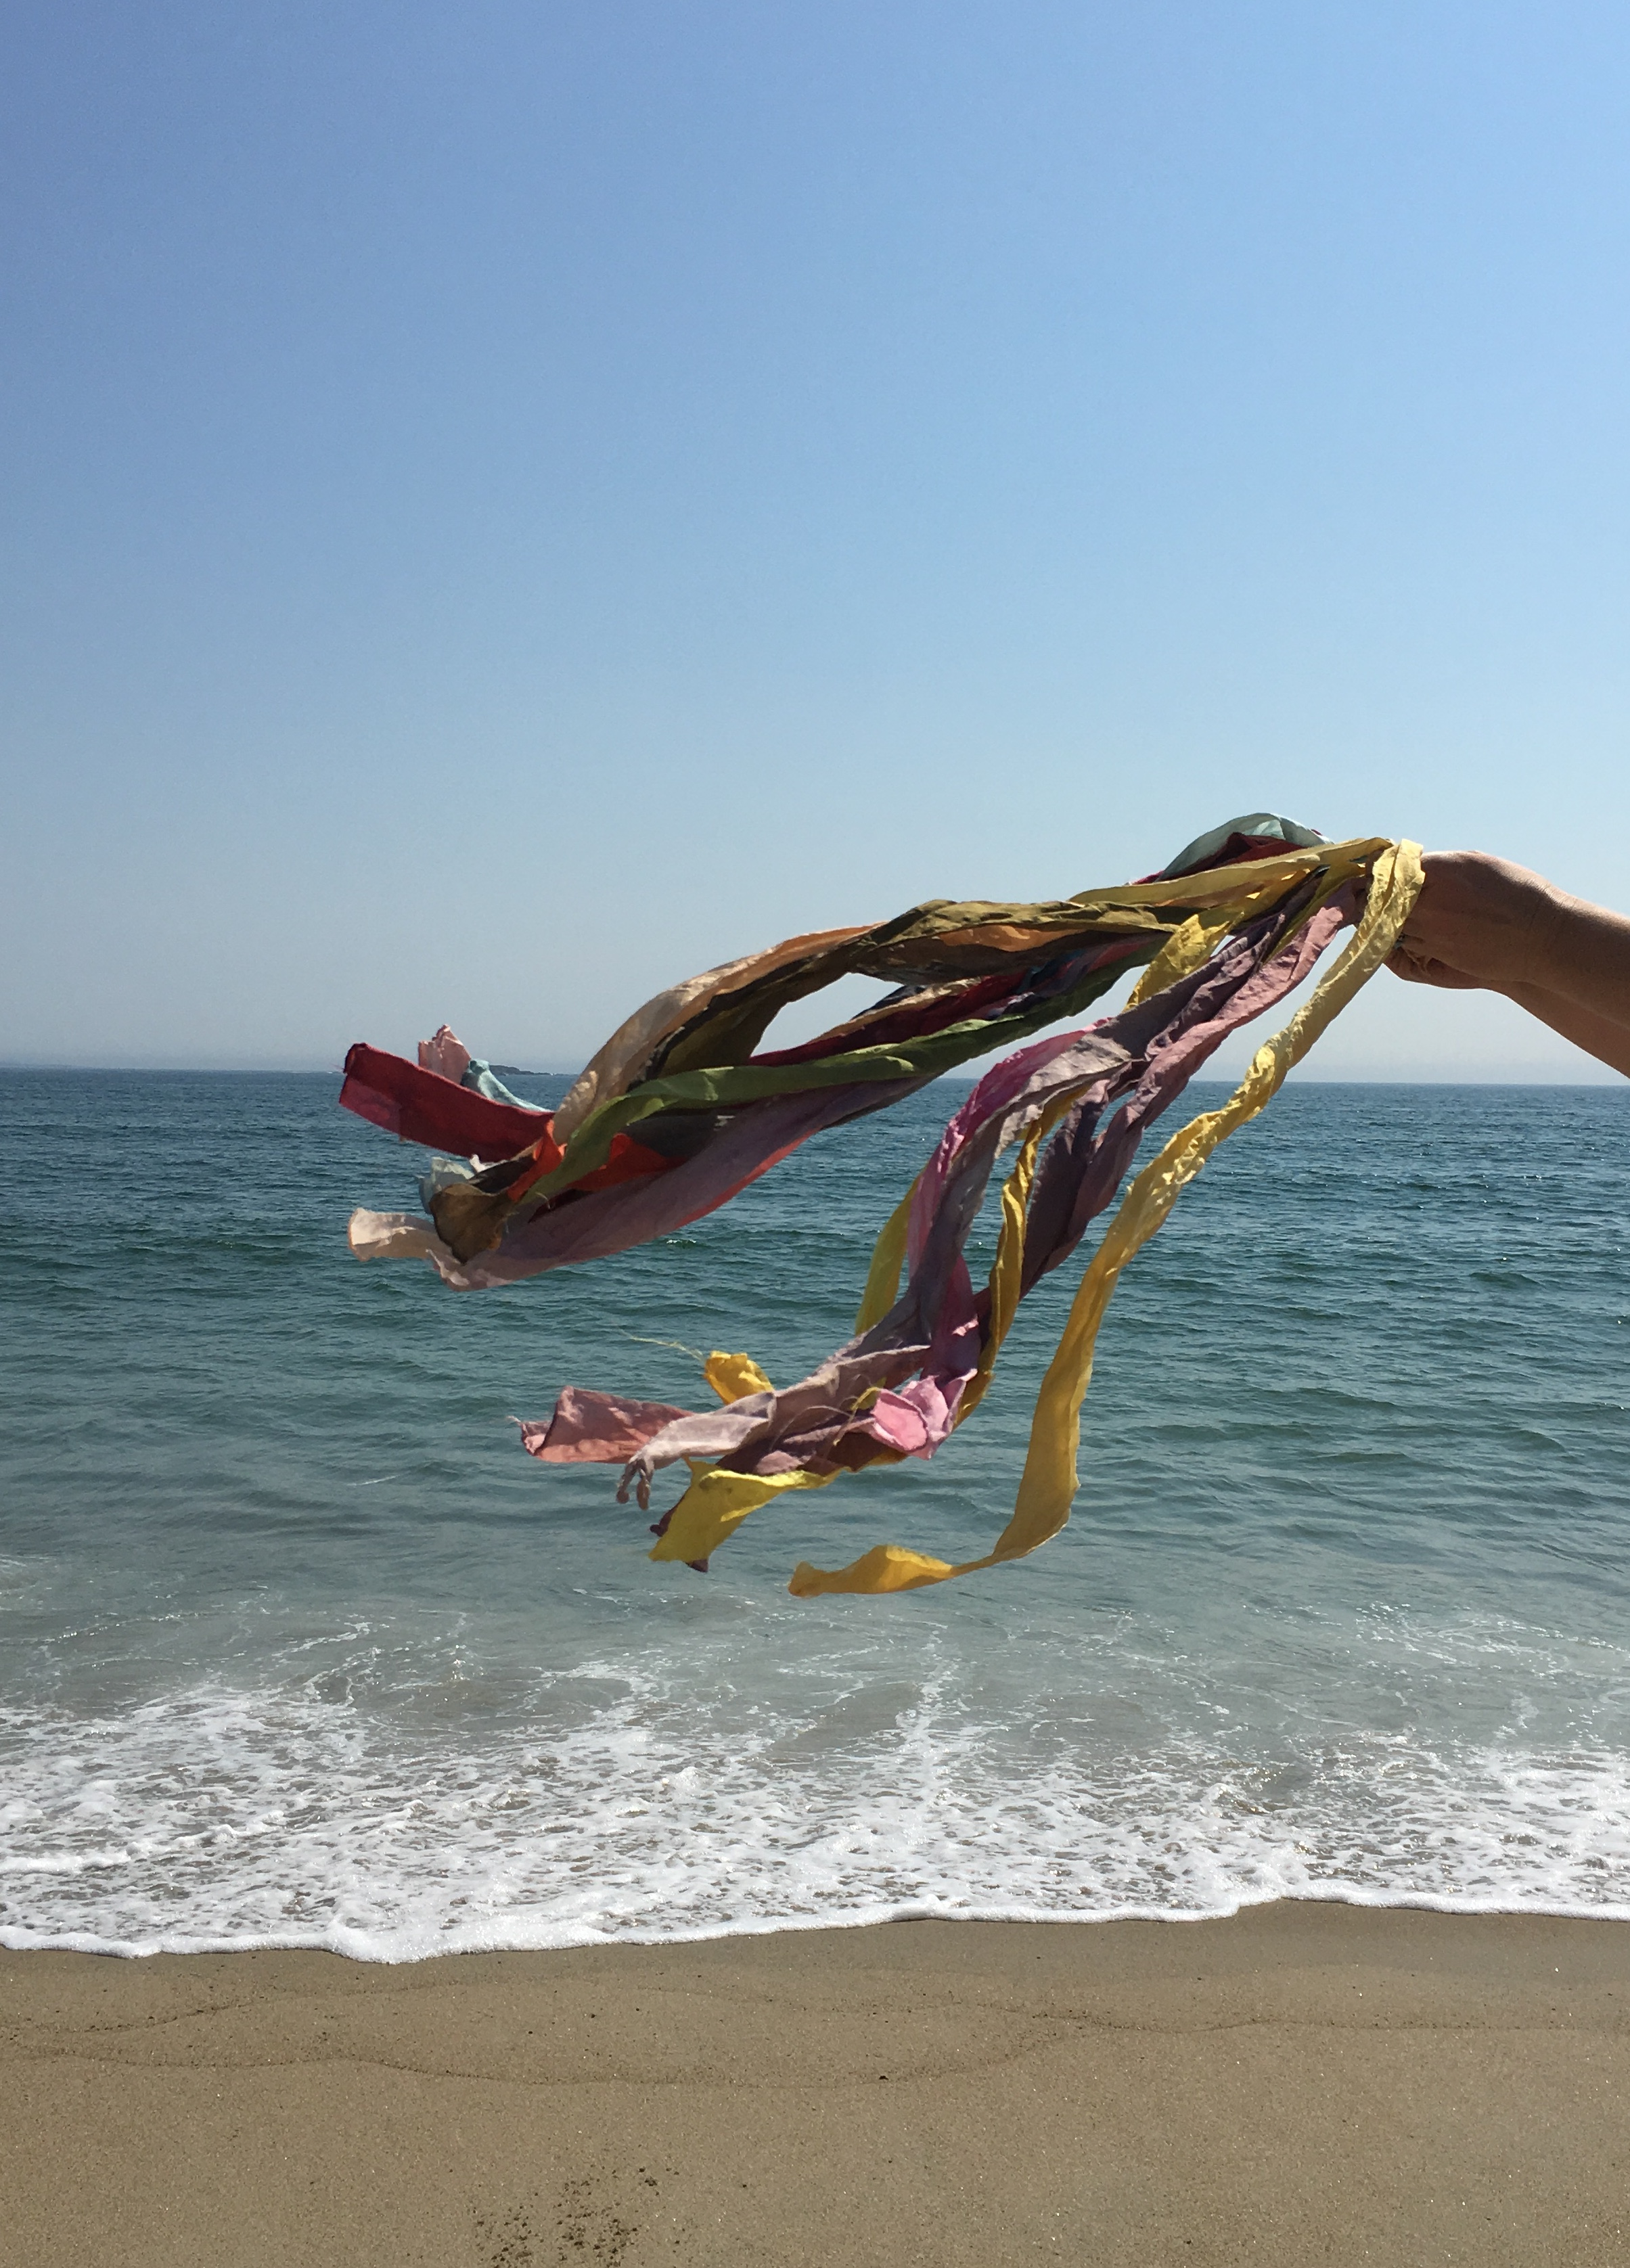 A spectrum on silk over the waves